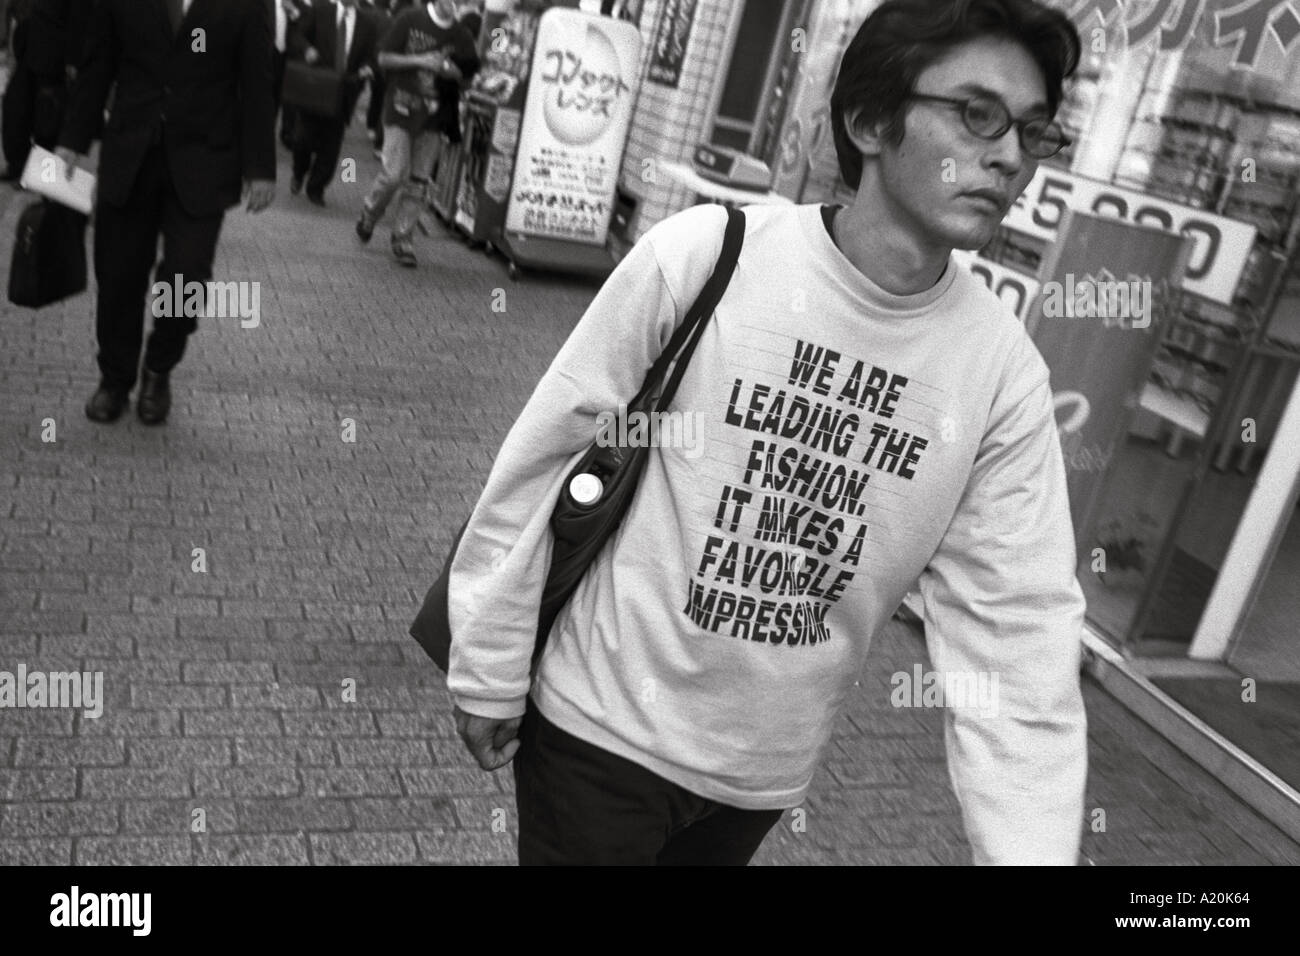 The use of English phrases and words as part of the design element on t shirts is fashionable in Tokyo, Japan - Stock Image